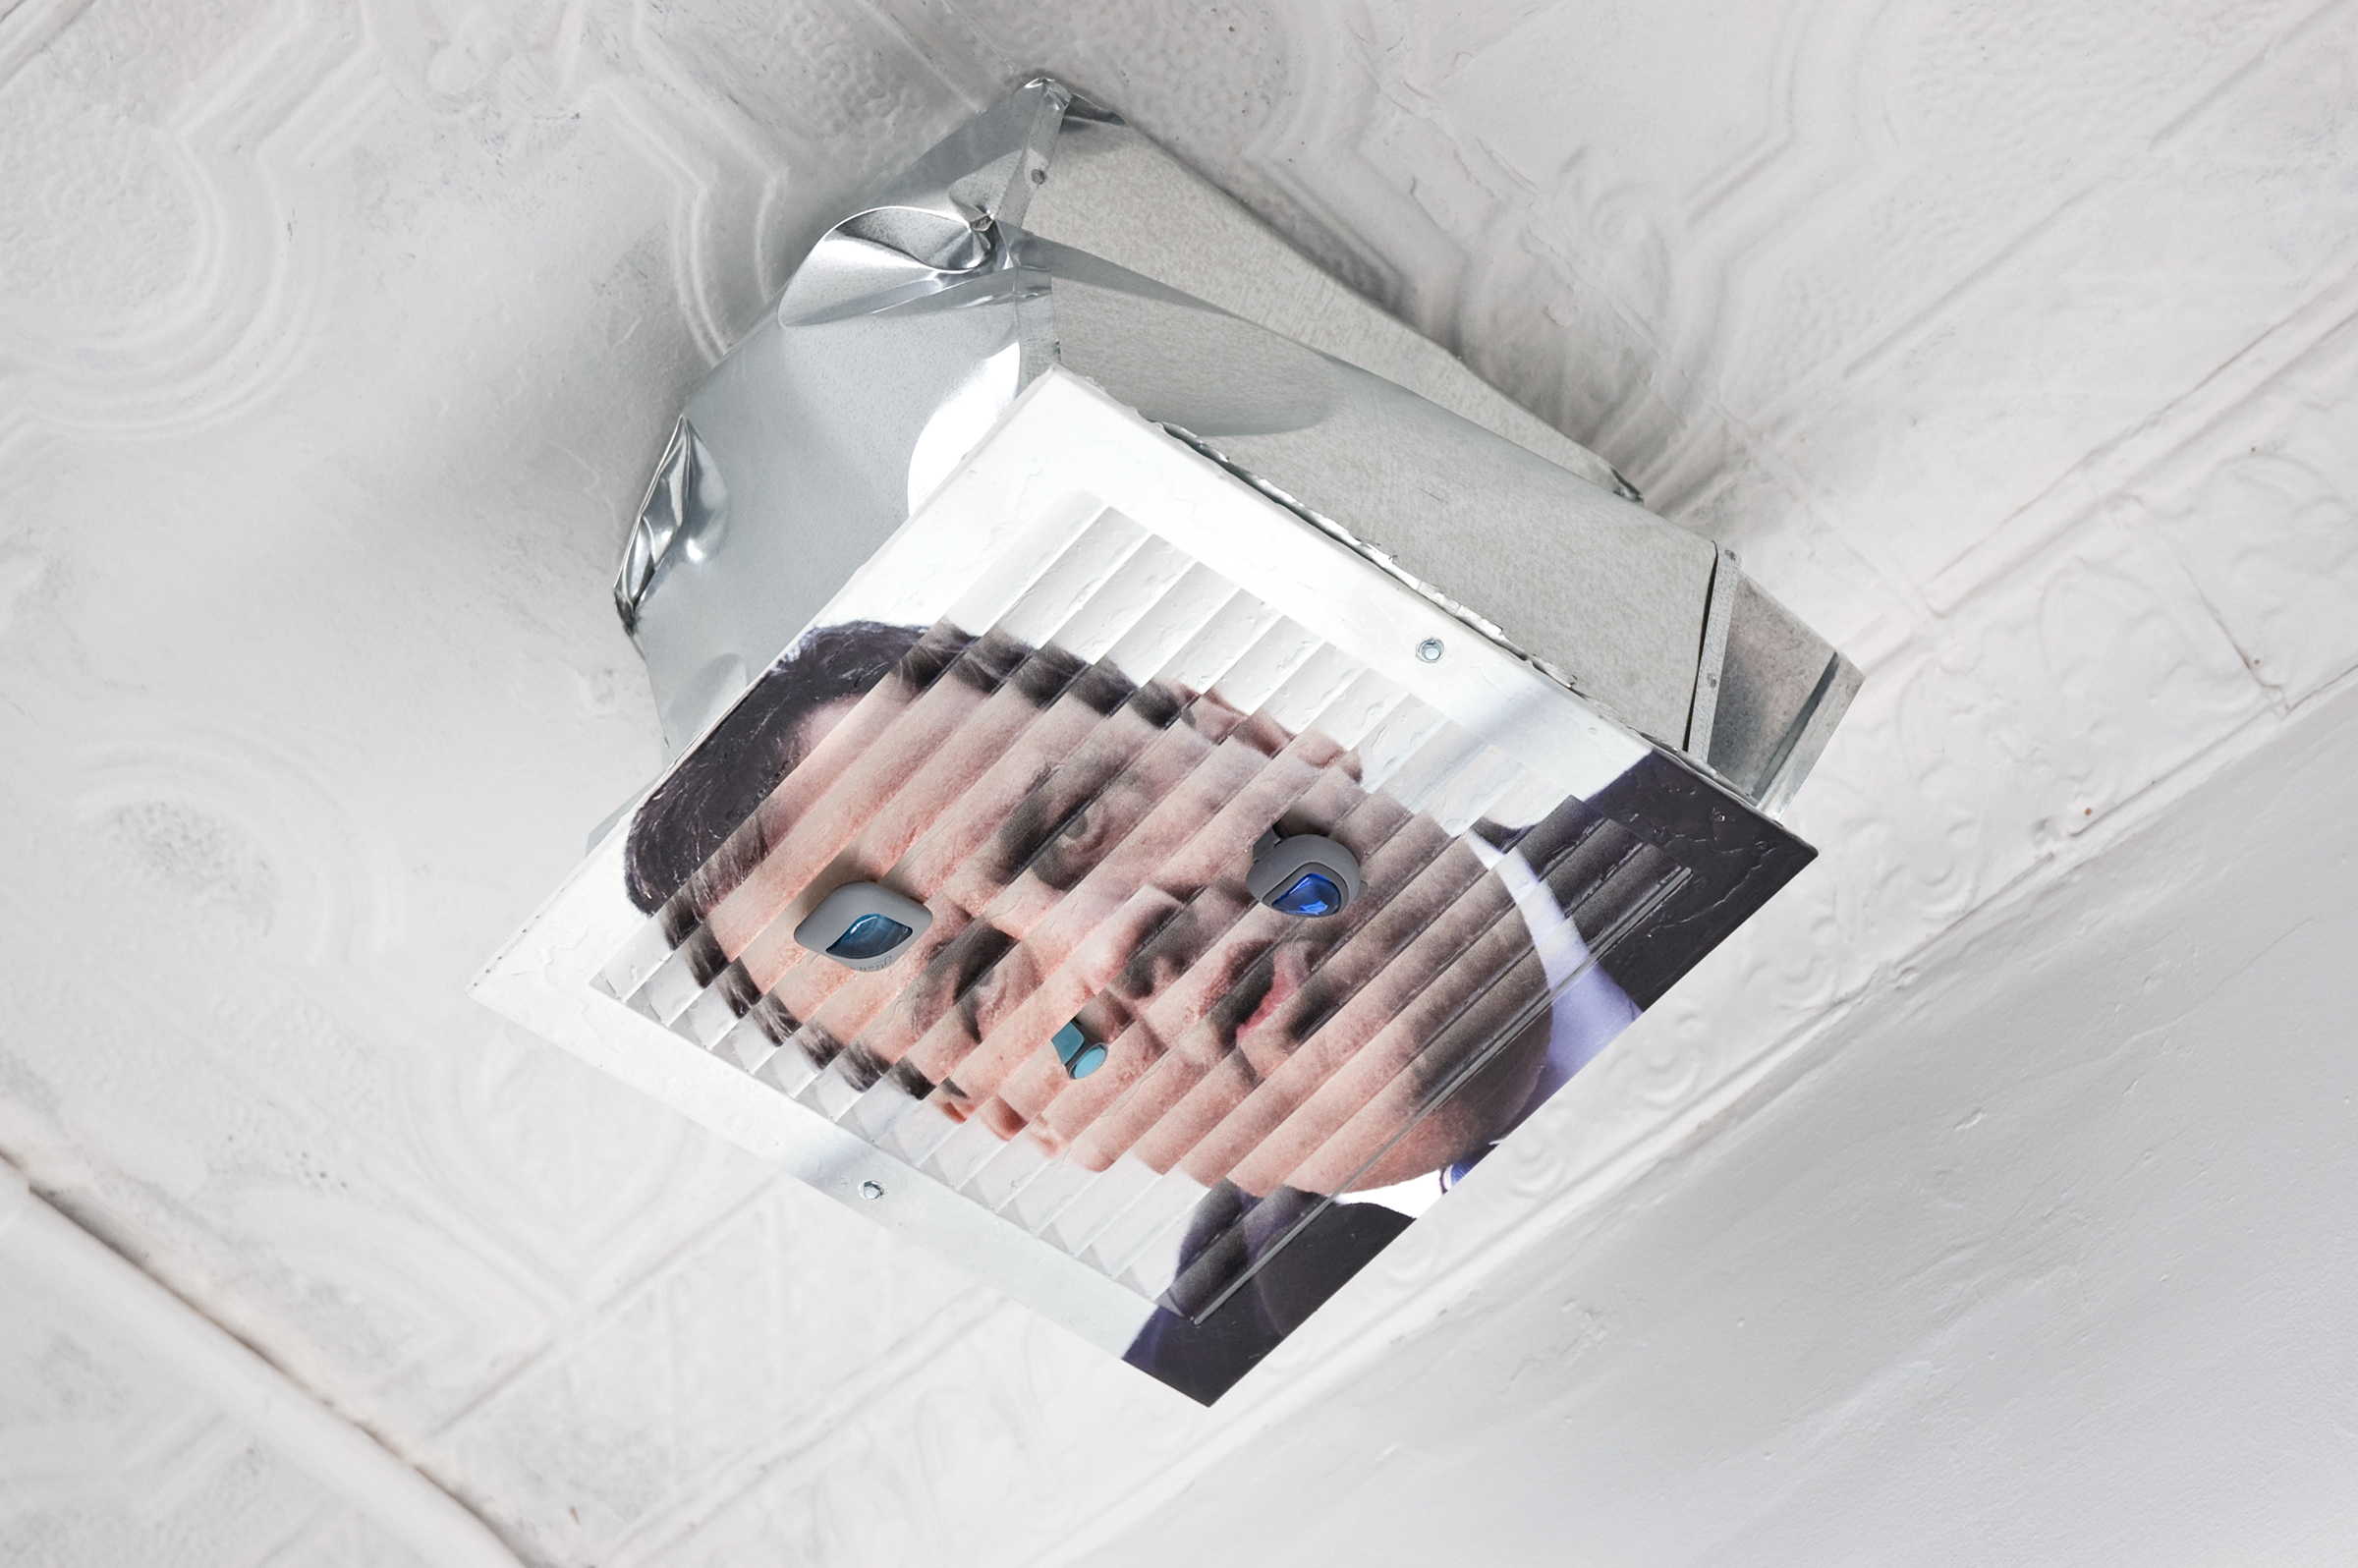 Michael Assiff,  HVAC (Chris Christie) , 2015, inkjet print and latex on powder coated steel, air fresheners, 11.75 x 13.75 x 16 in